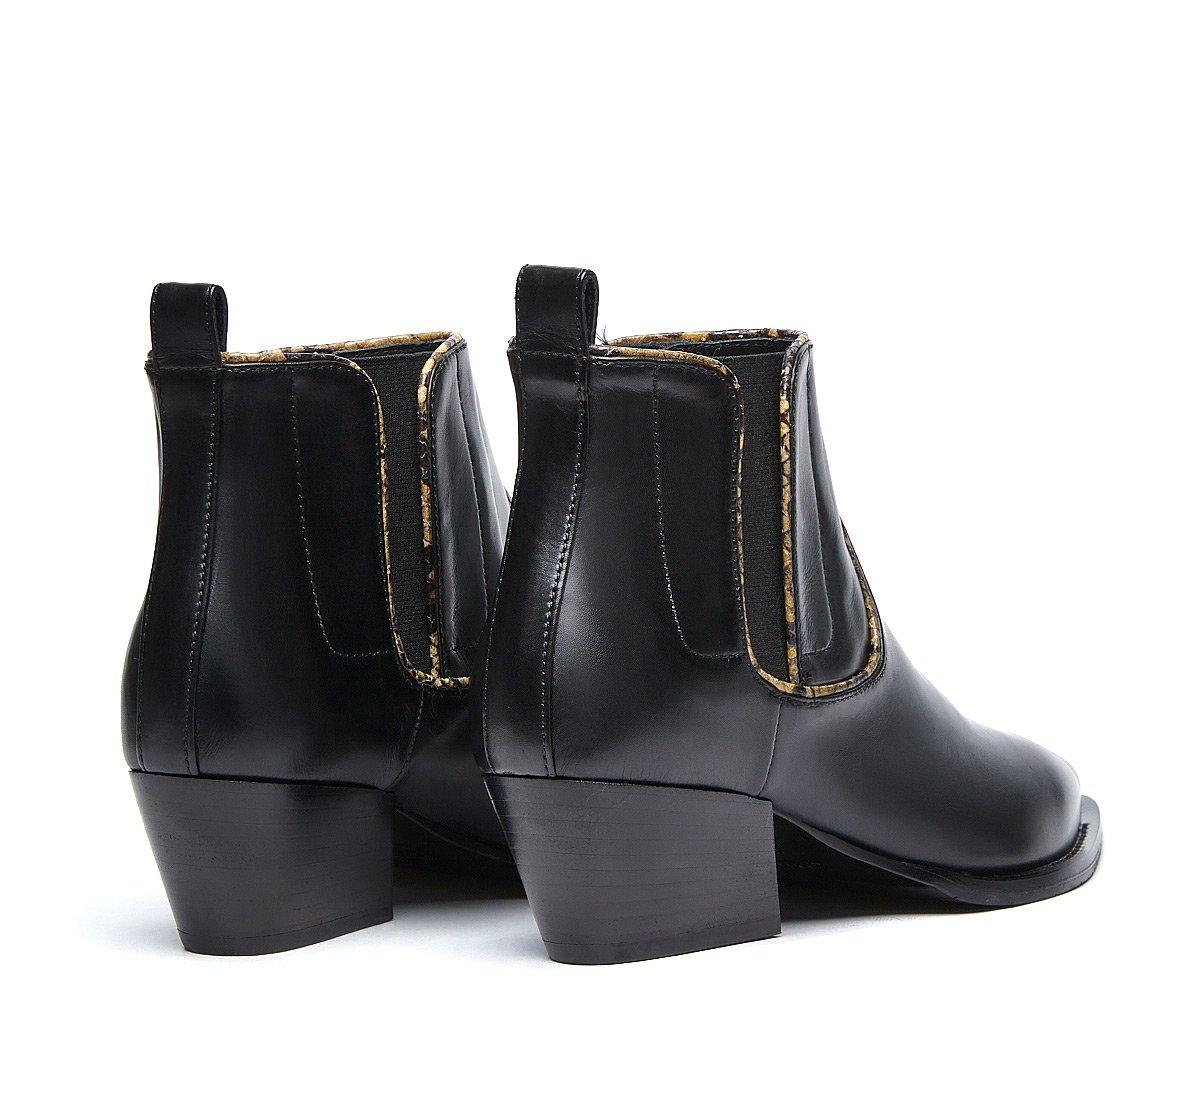 Texan boots in soft calf leather